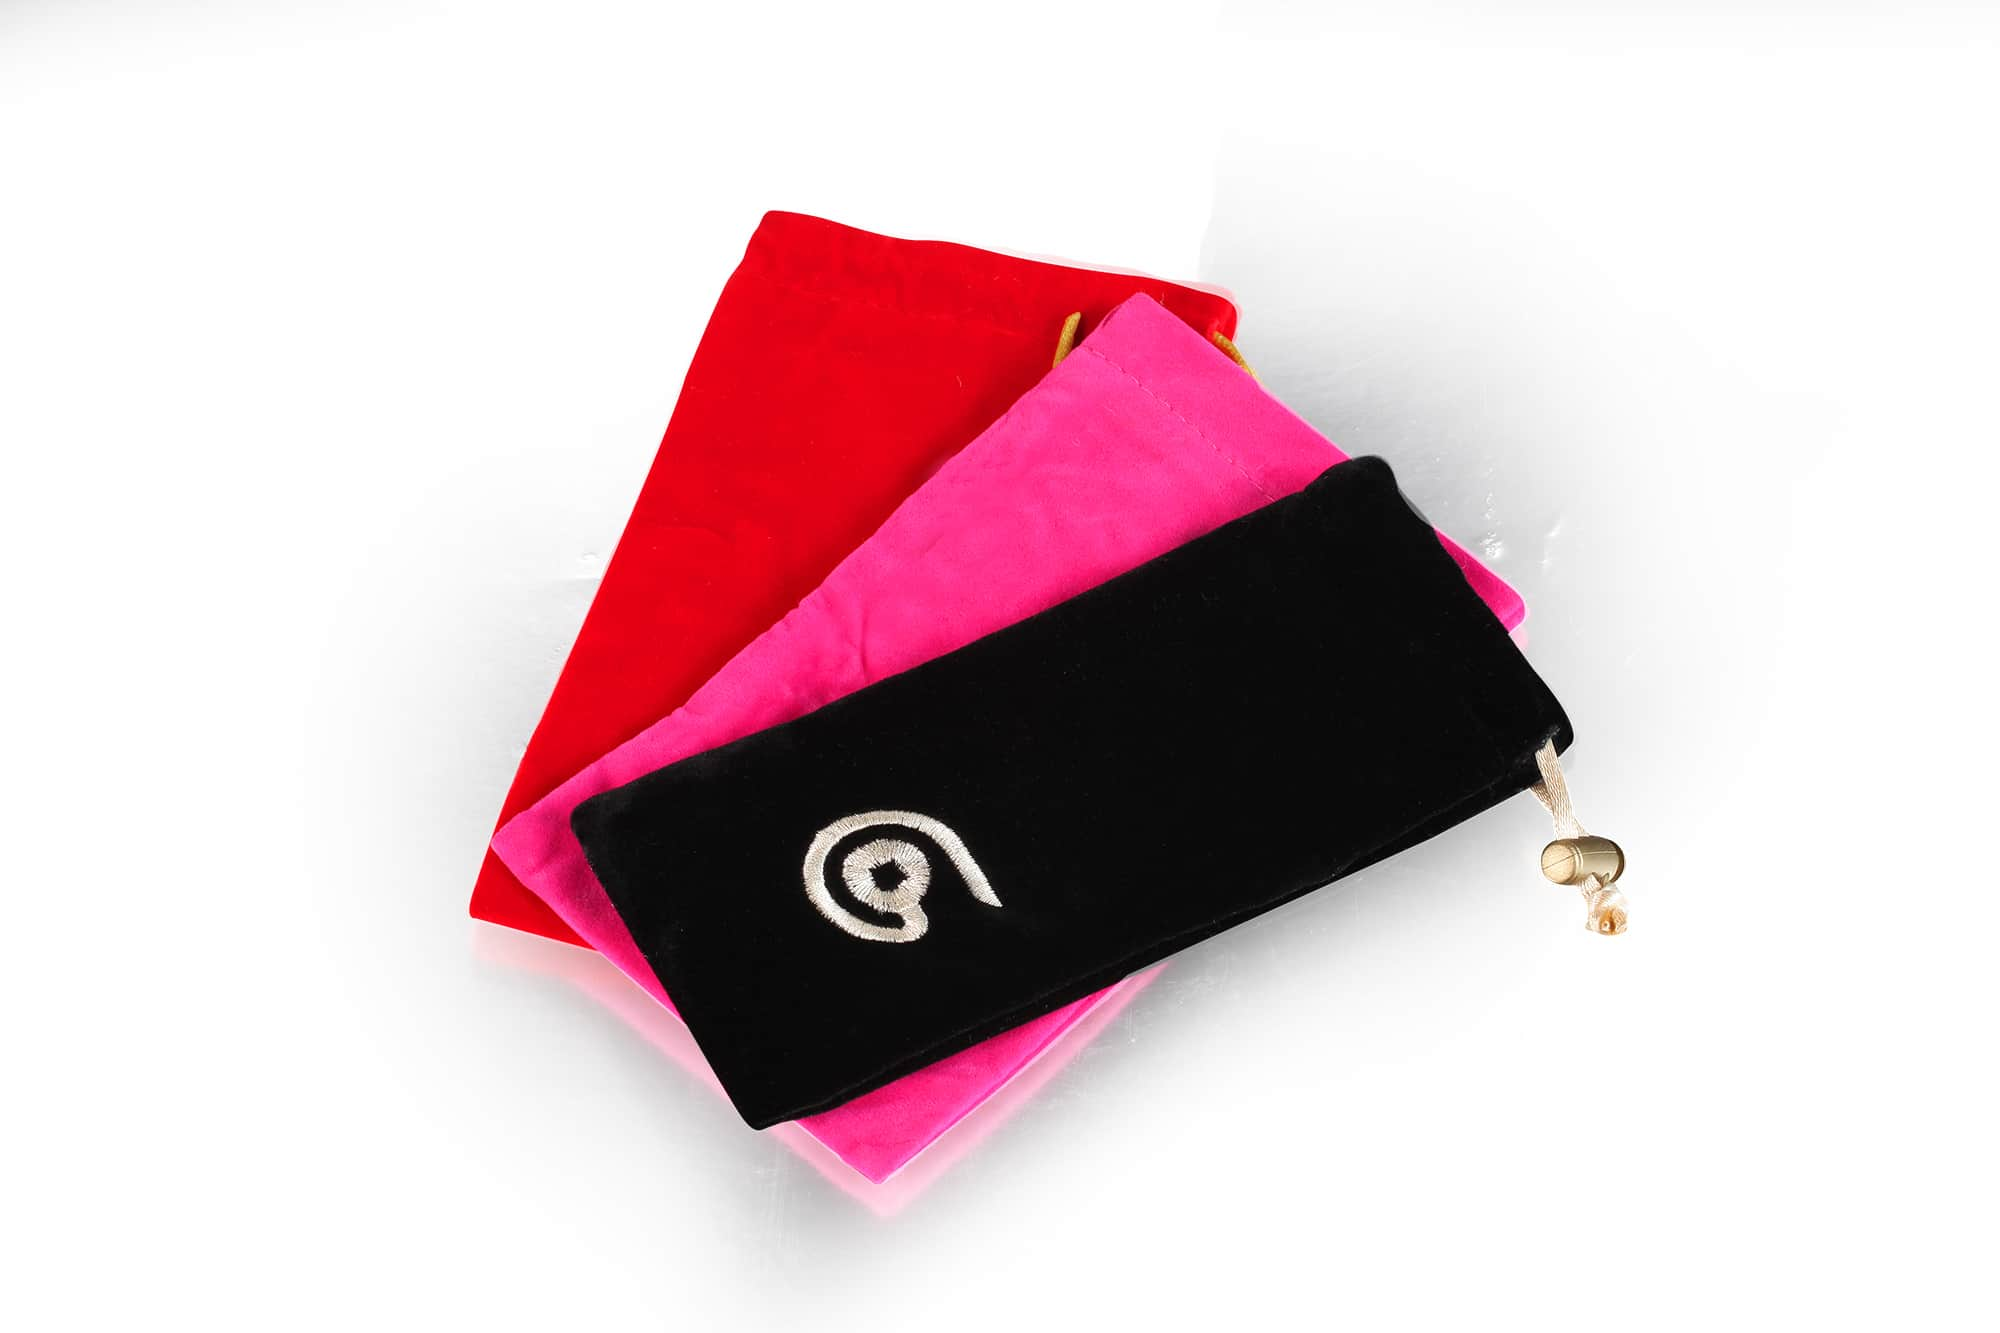 Fashionable velvet pen pouch with stopper